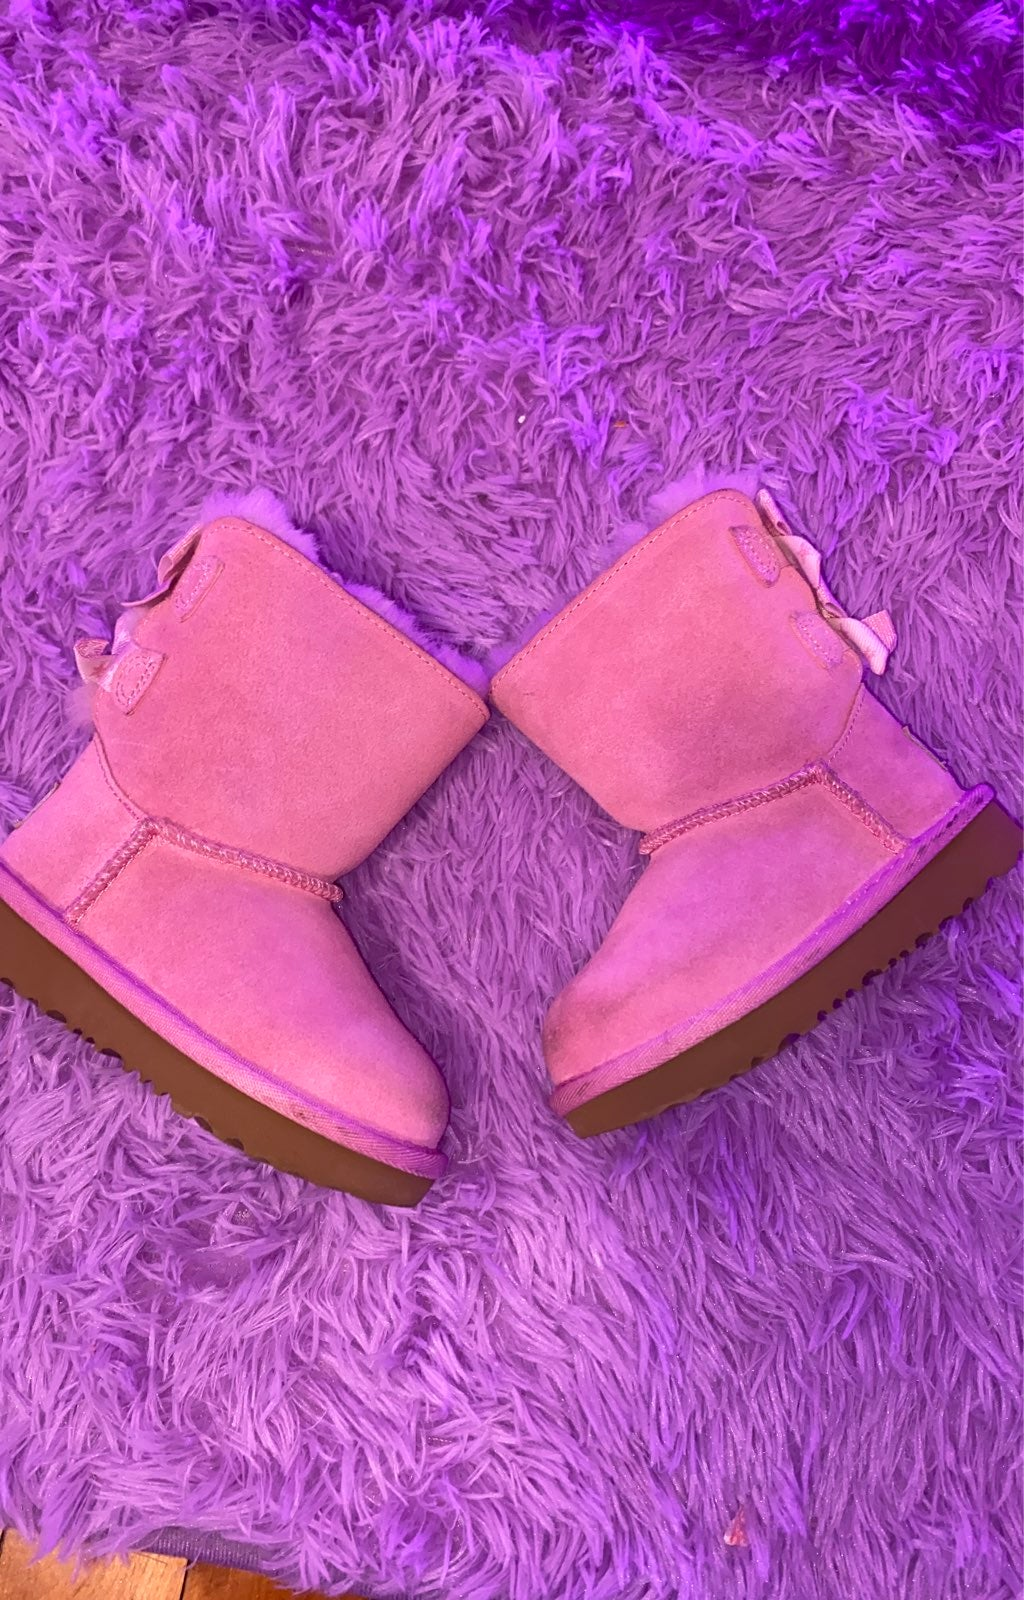 Uggs t bailey bow    star toddler